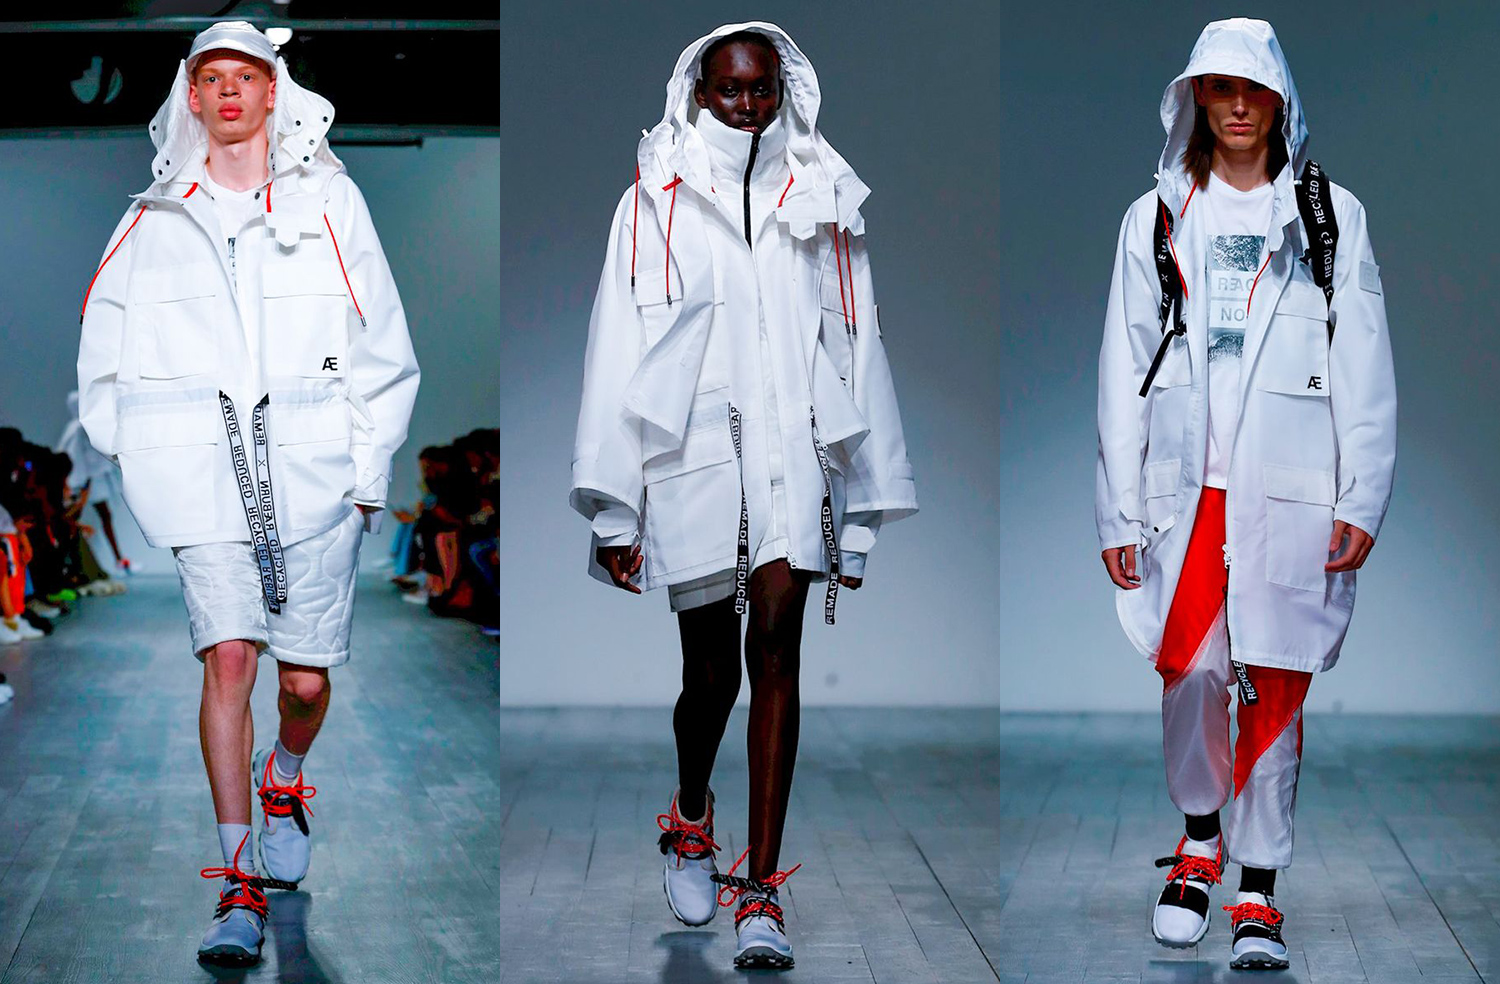 Christopher Raeburn Spring Summer 2019, LFWM SS19, London Fashion Week Men's